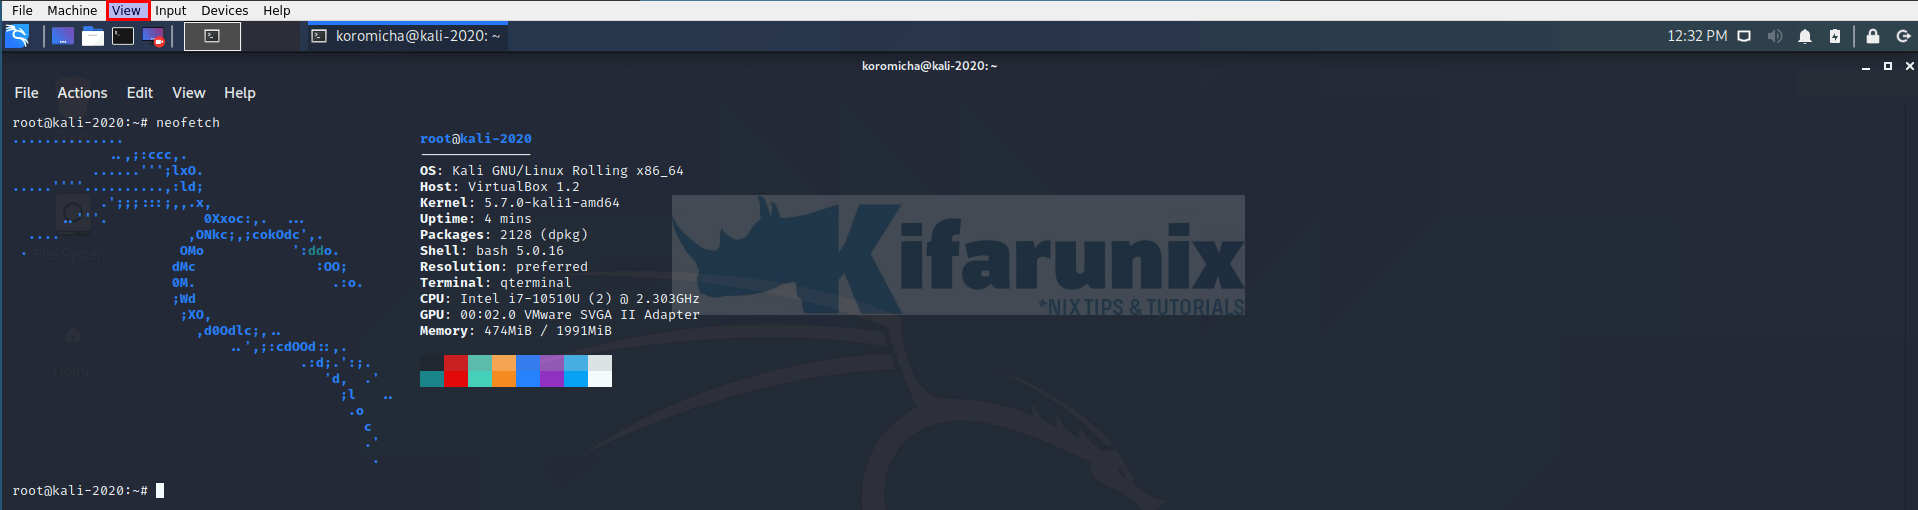 Install VirtualBox Guest Additions on Kali Linux 2020.3